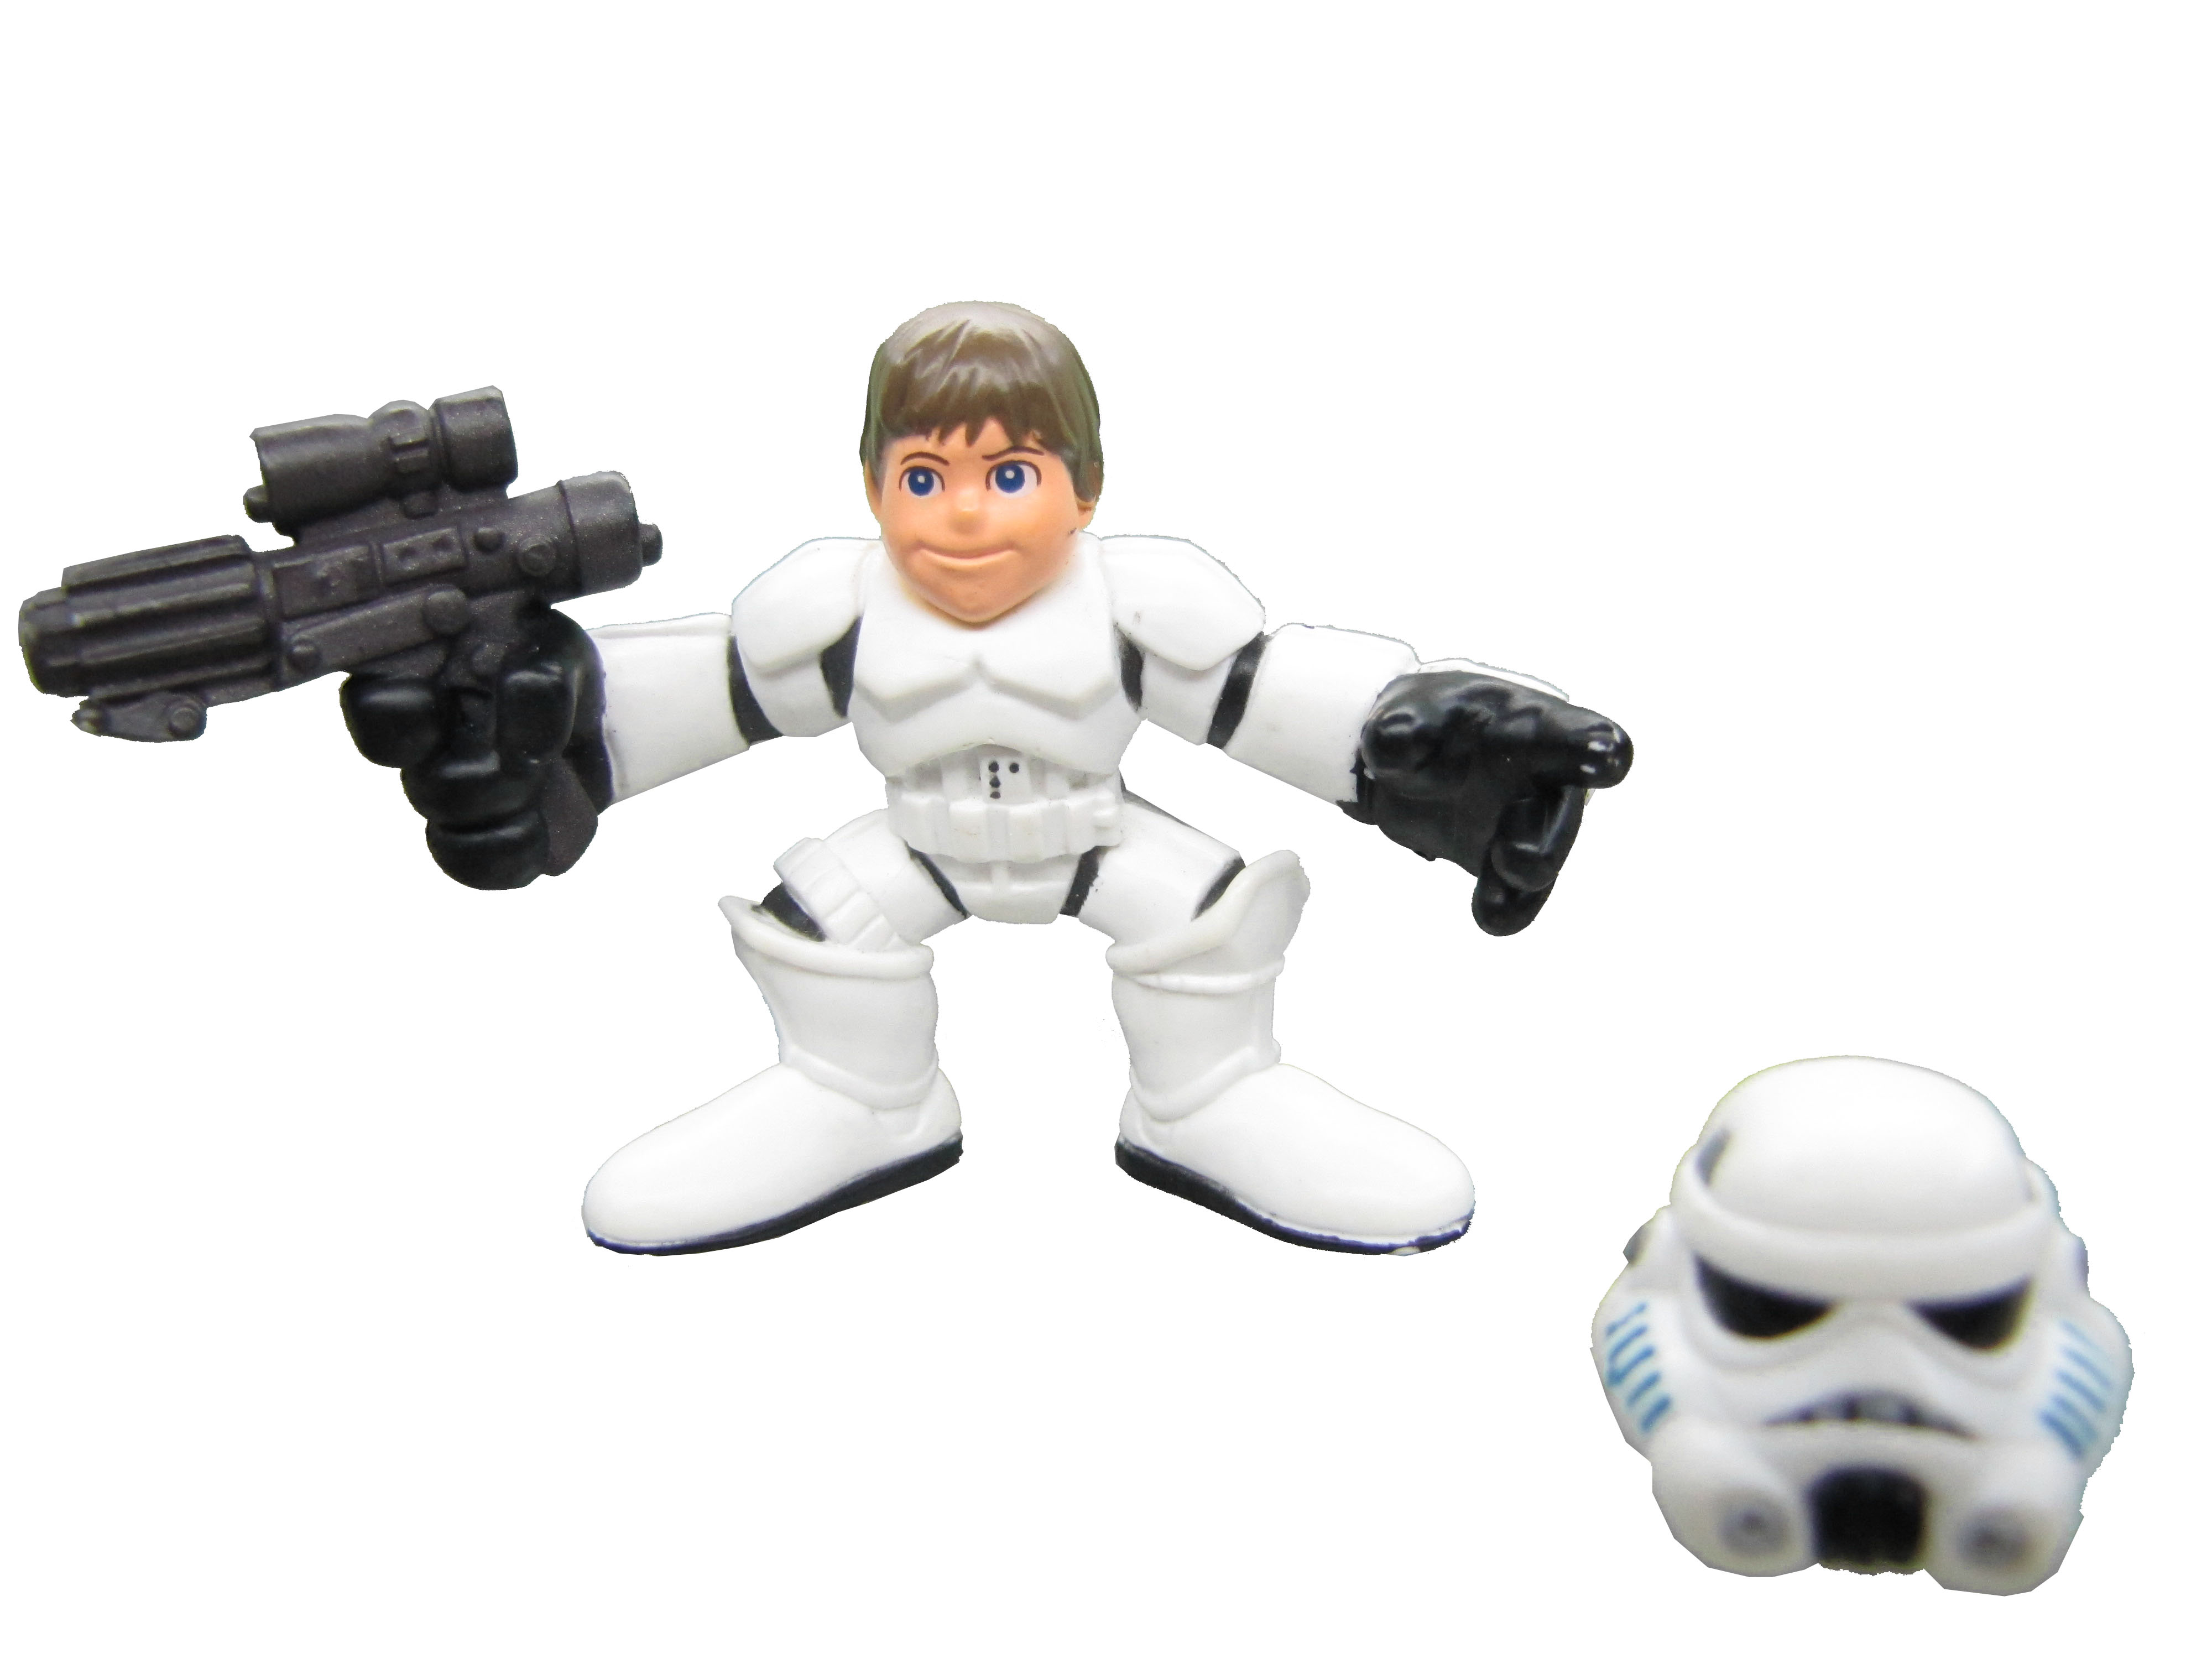 Star Wars Galactic Heroes Luke Skywalker Stormtrooper Desguise